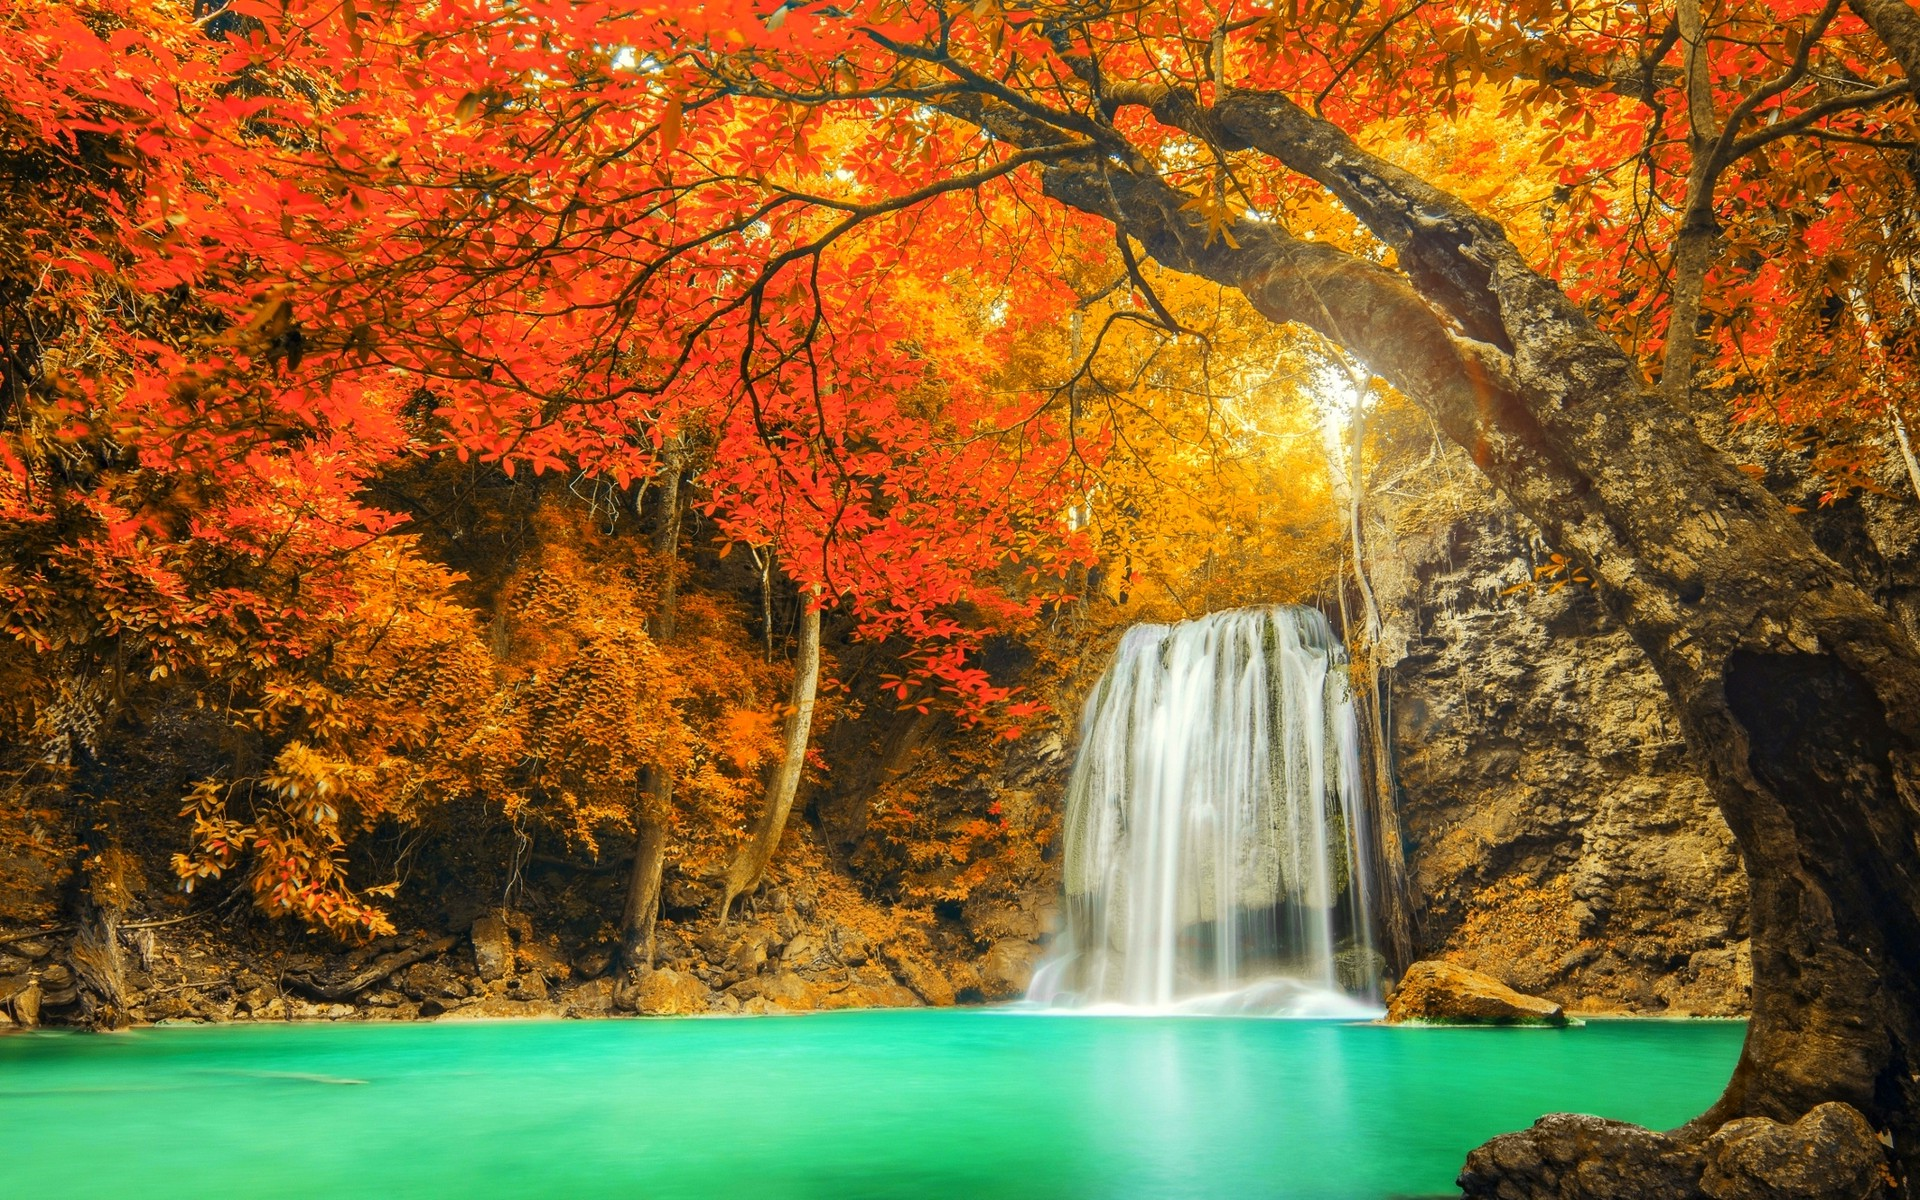 Live Moving Fall Wallpaper For Pc Autumn Waterfall Hd Wallpaper Background Image